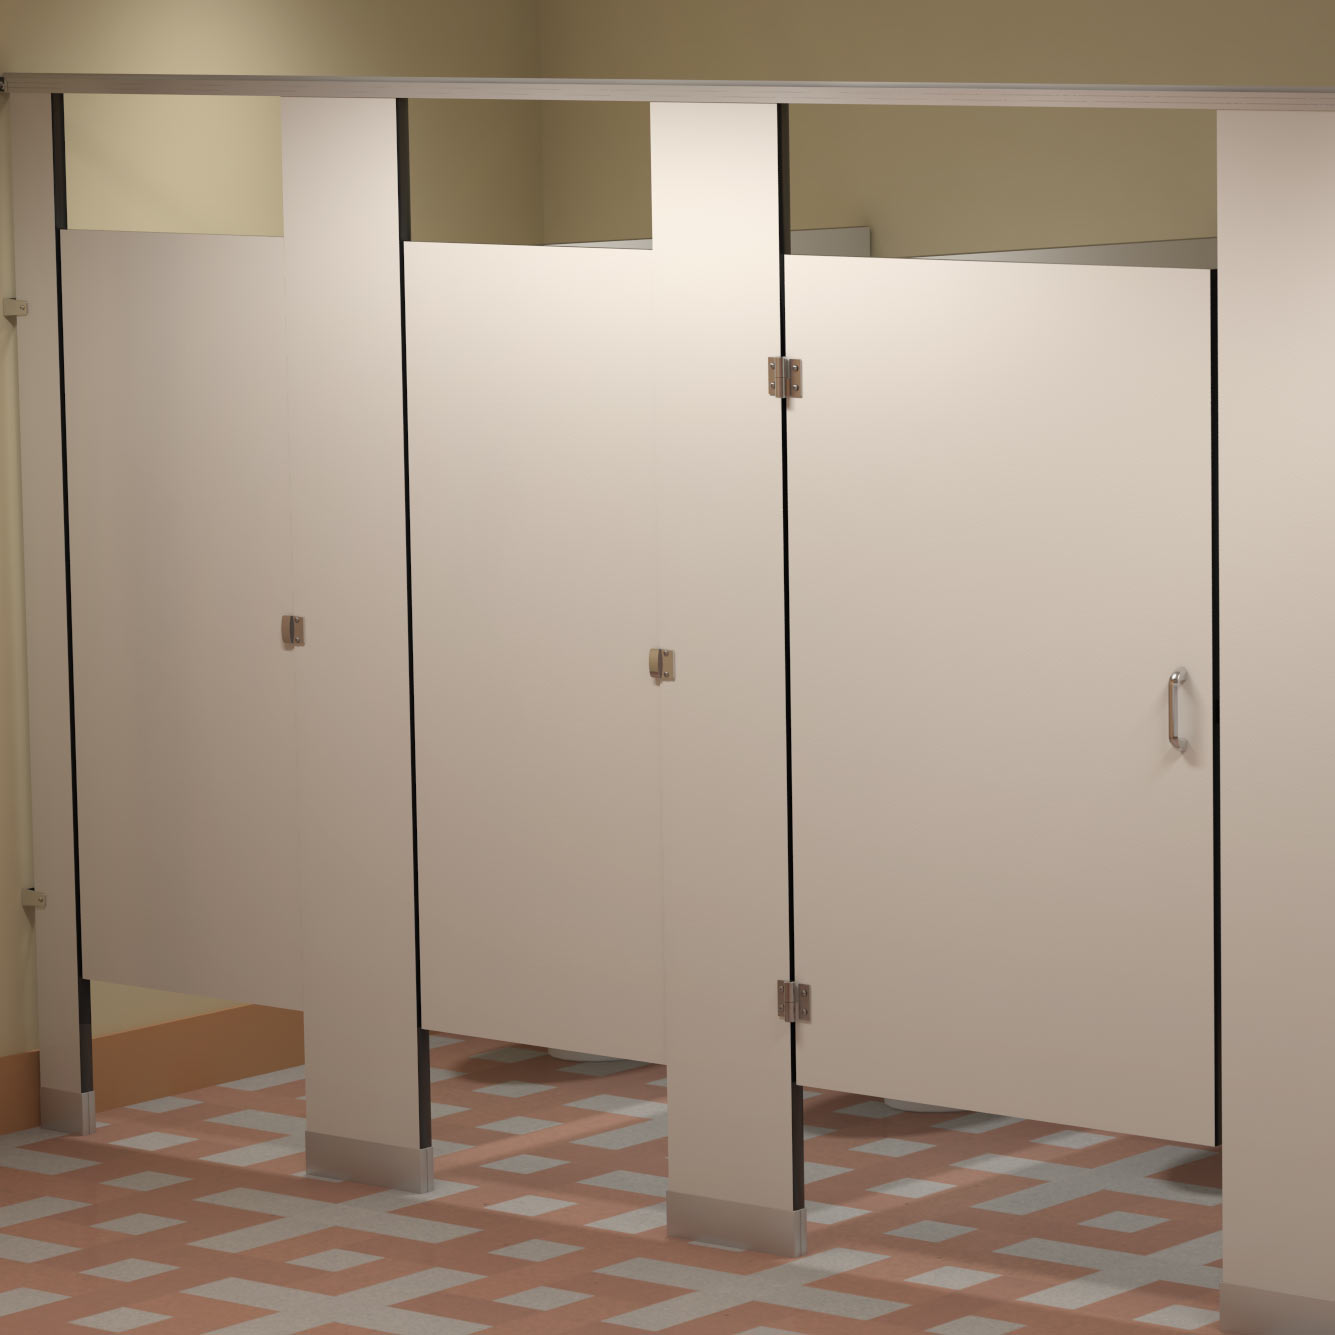 Bathroom Partitions Prices phenolic-bathroom-partitions